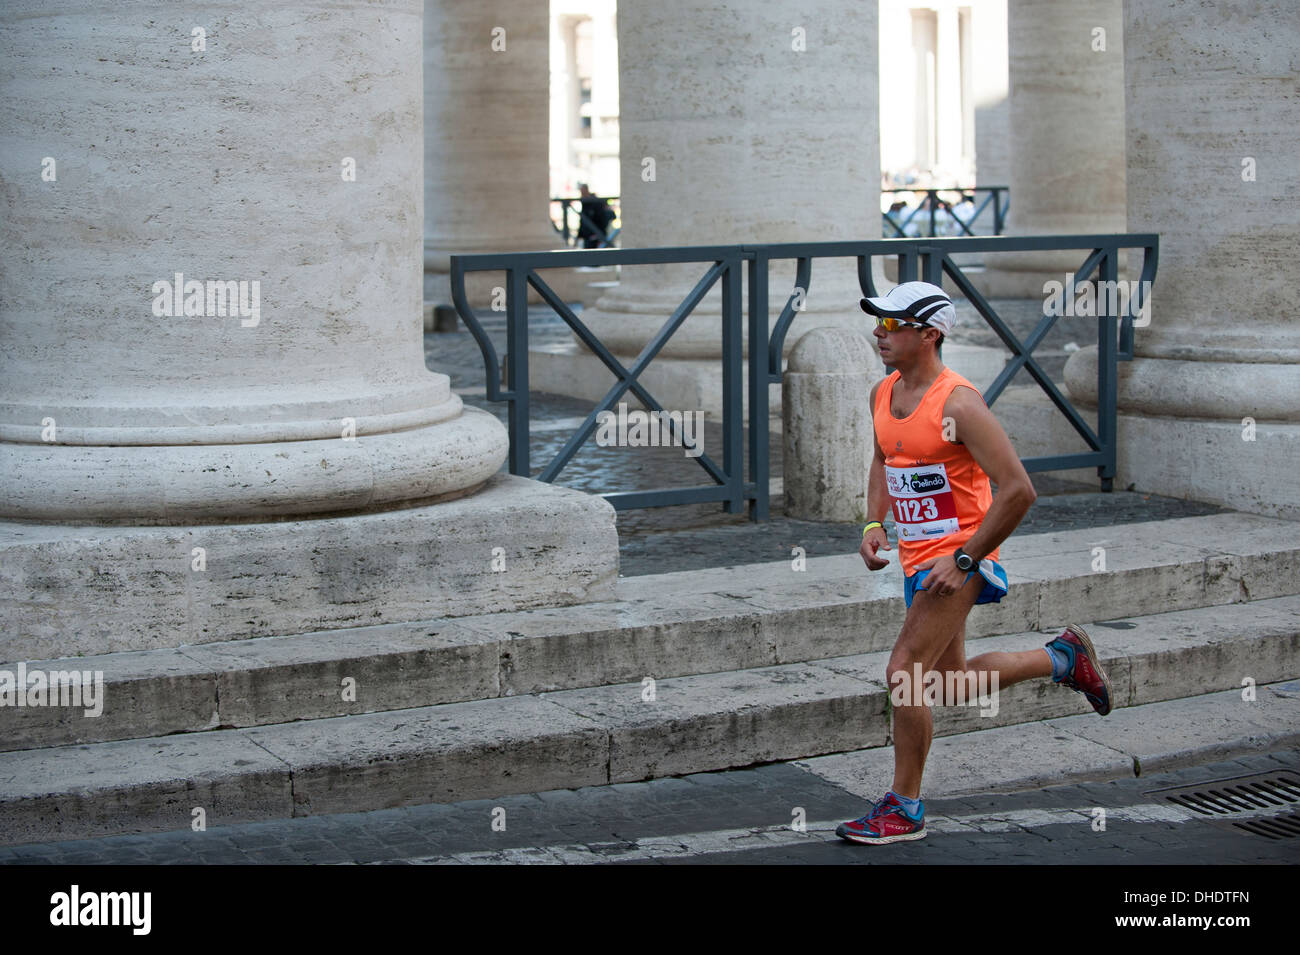 Athlete do warm up before race in Vatican city - Stock Image